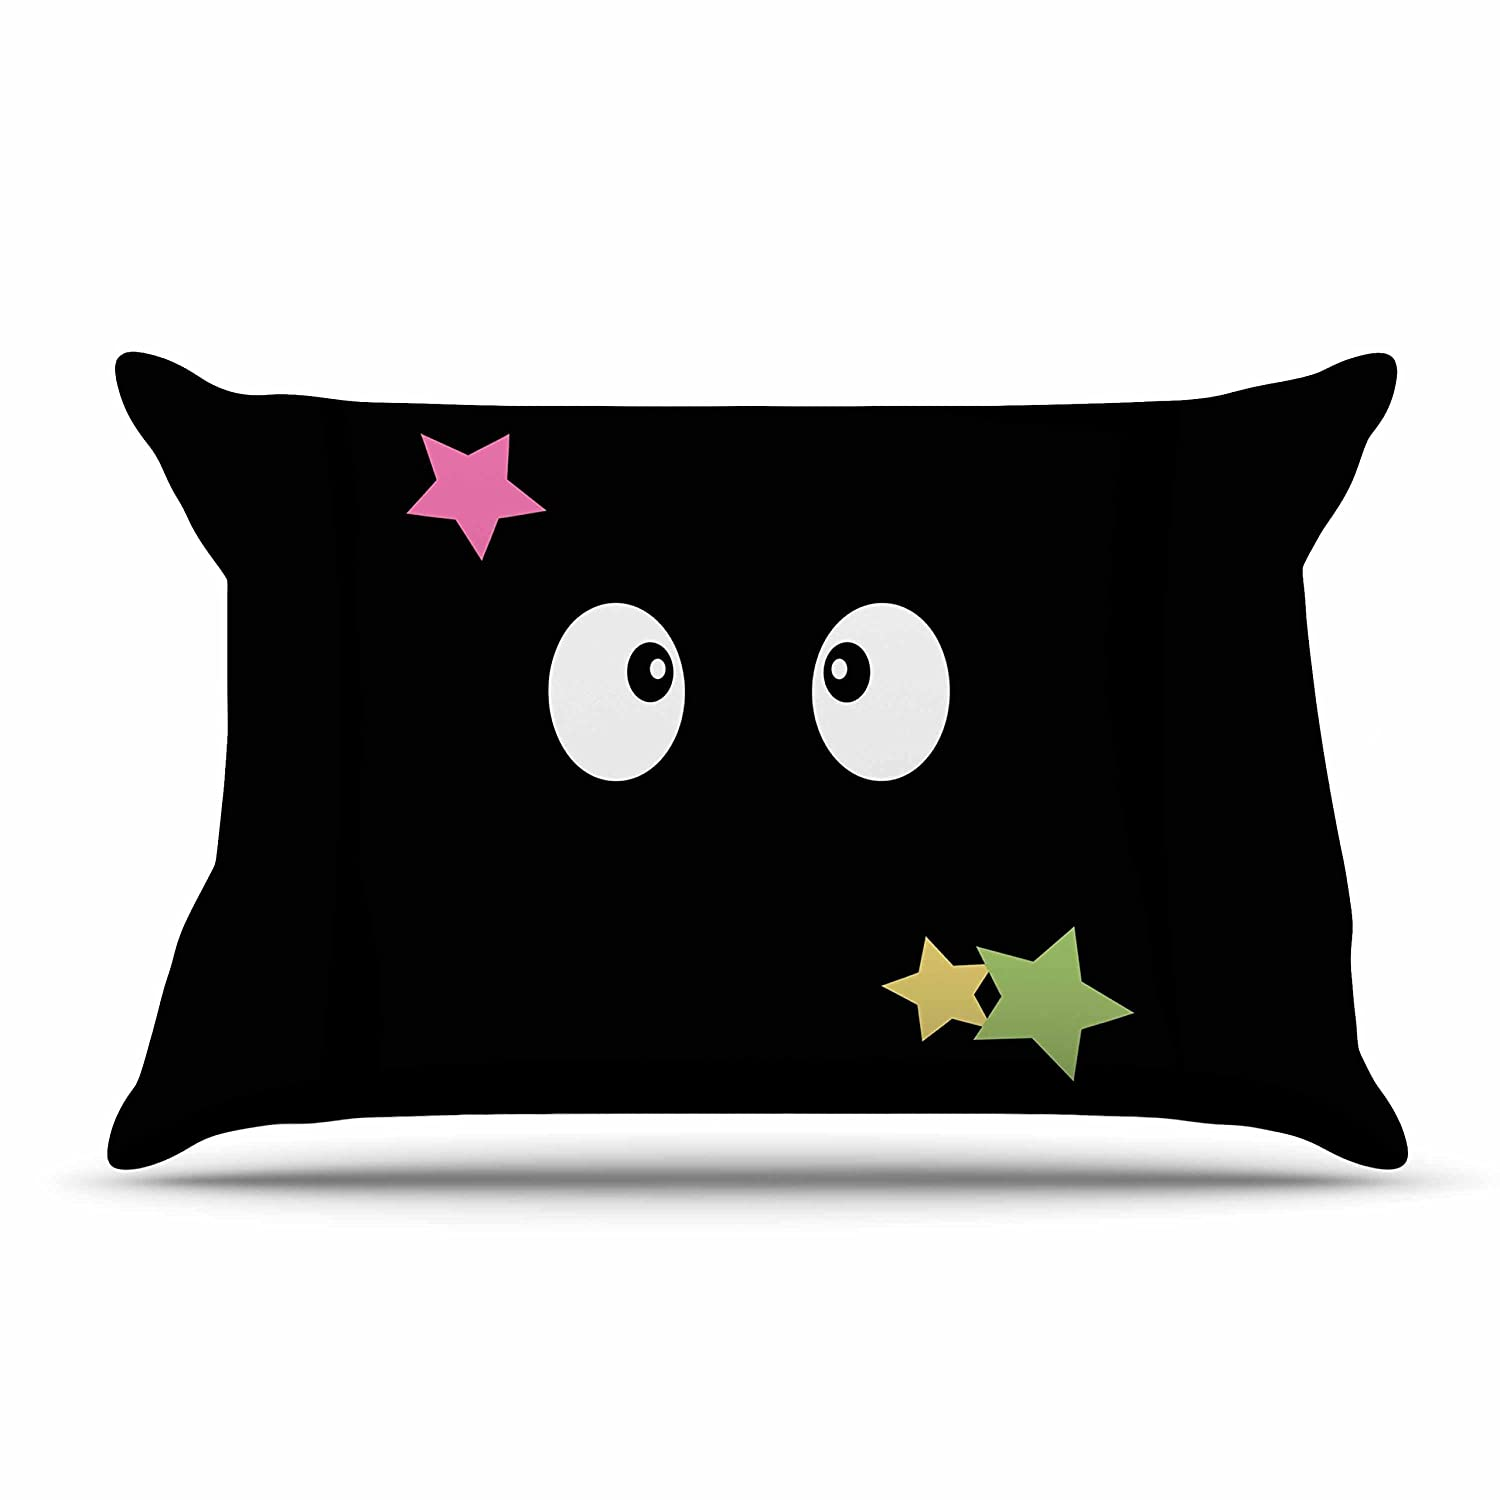 30 by 20-Inch Kess InHouse Jackie Rose Soot Gremlins Black Multicolor Standard Pillow Case 30 X 20